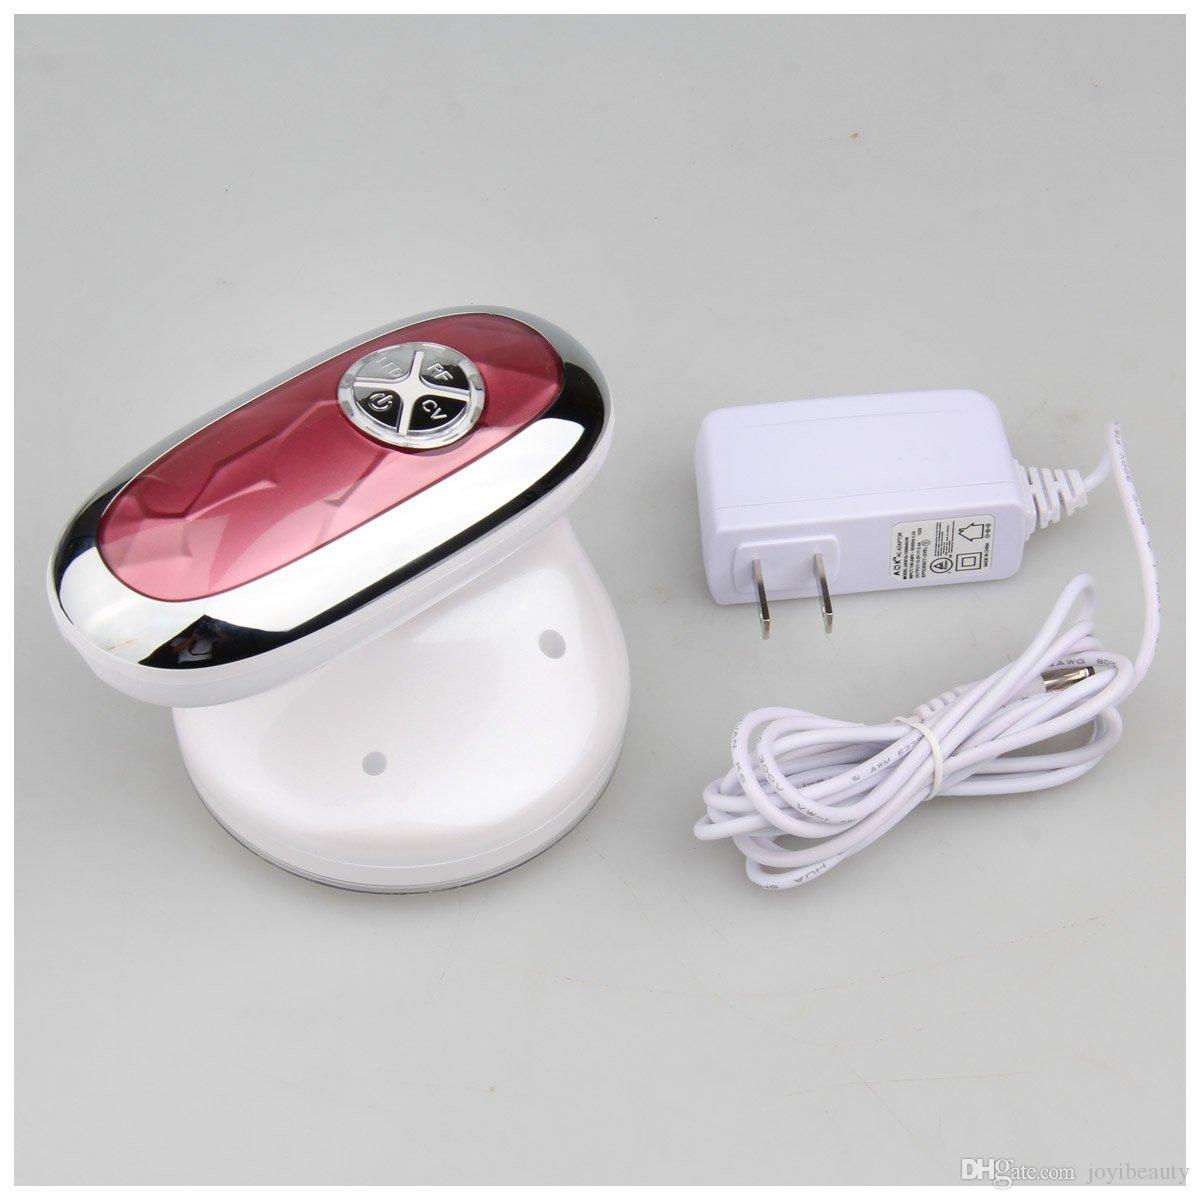 RF Cavitation Ultrasound Ultrasonic Body Sculpture Fat Burn Cellulite Weight Loss Machine With CE approval